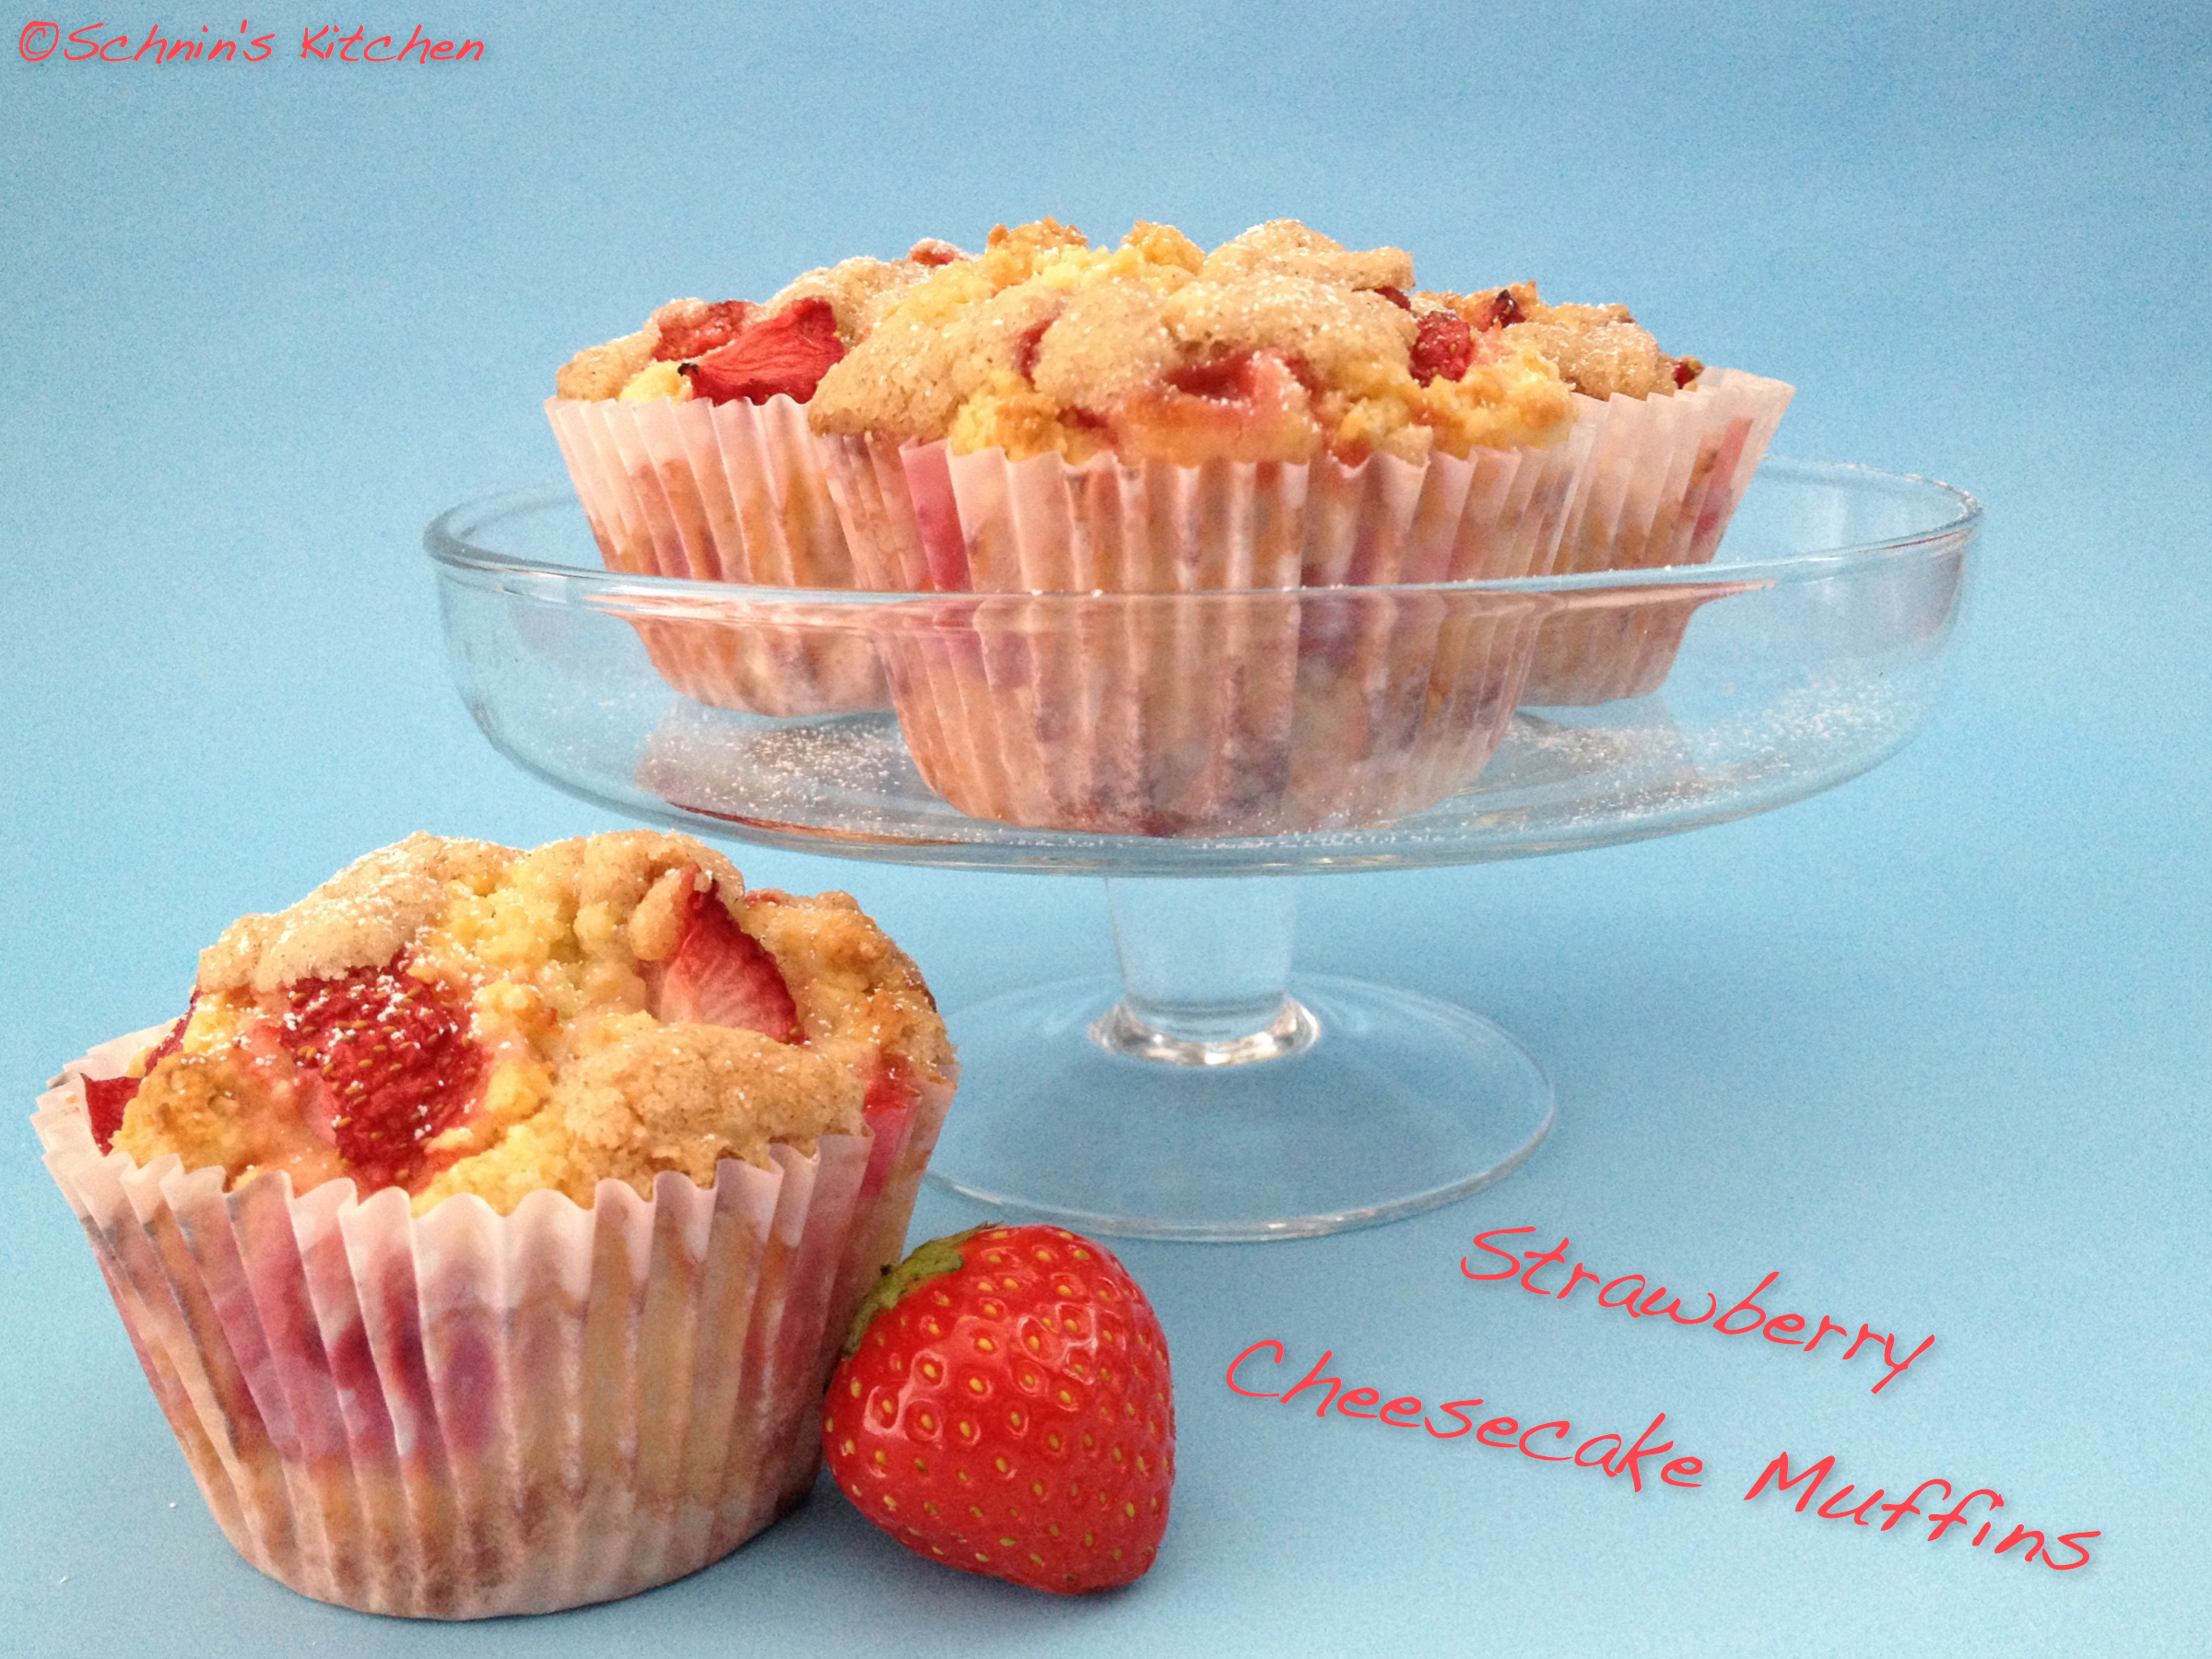 Strawberry Cheesecake Muffins mit Zimt-Streuseln